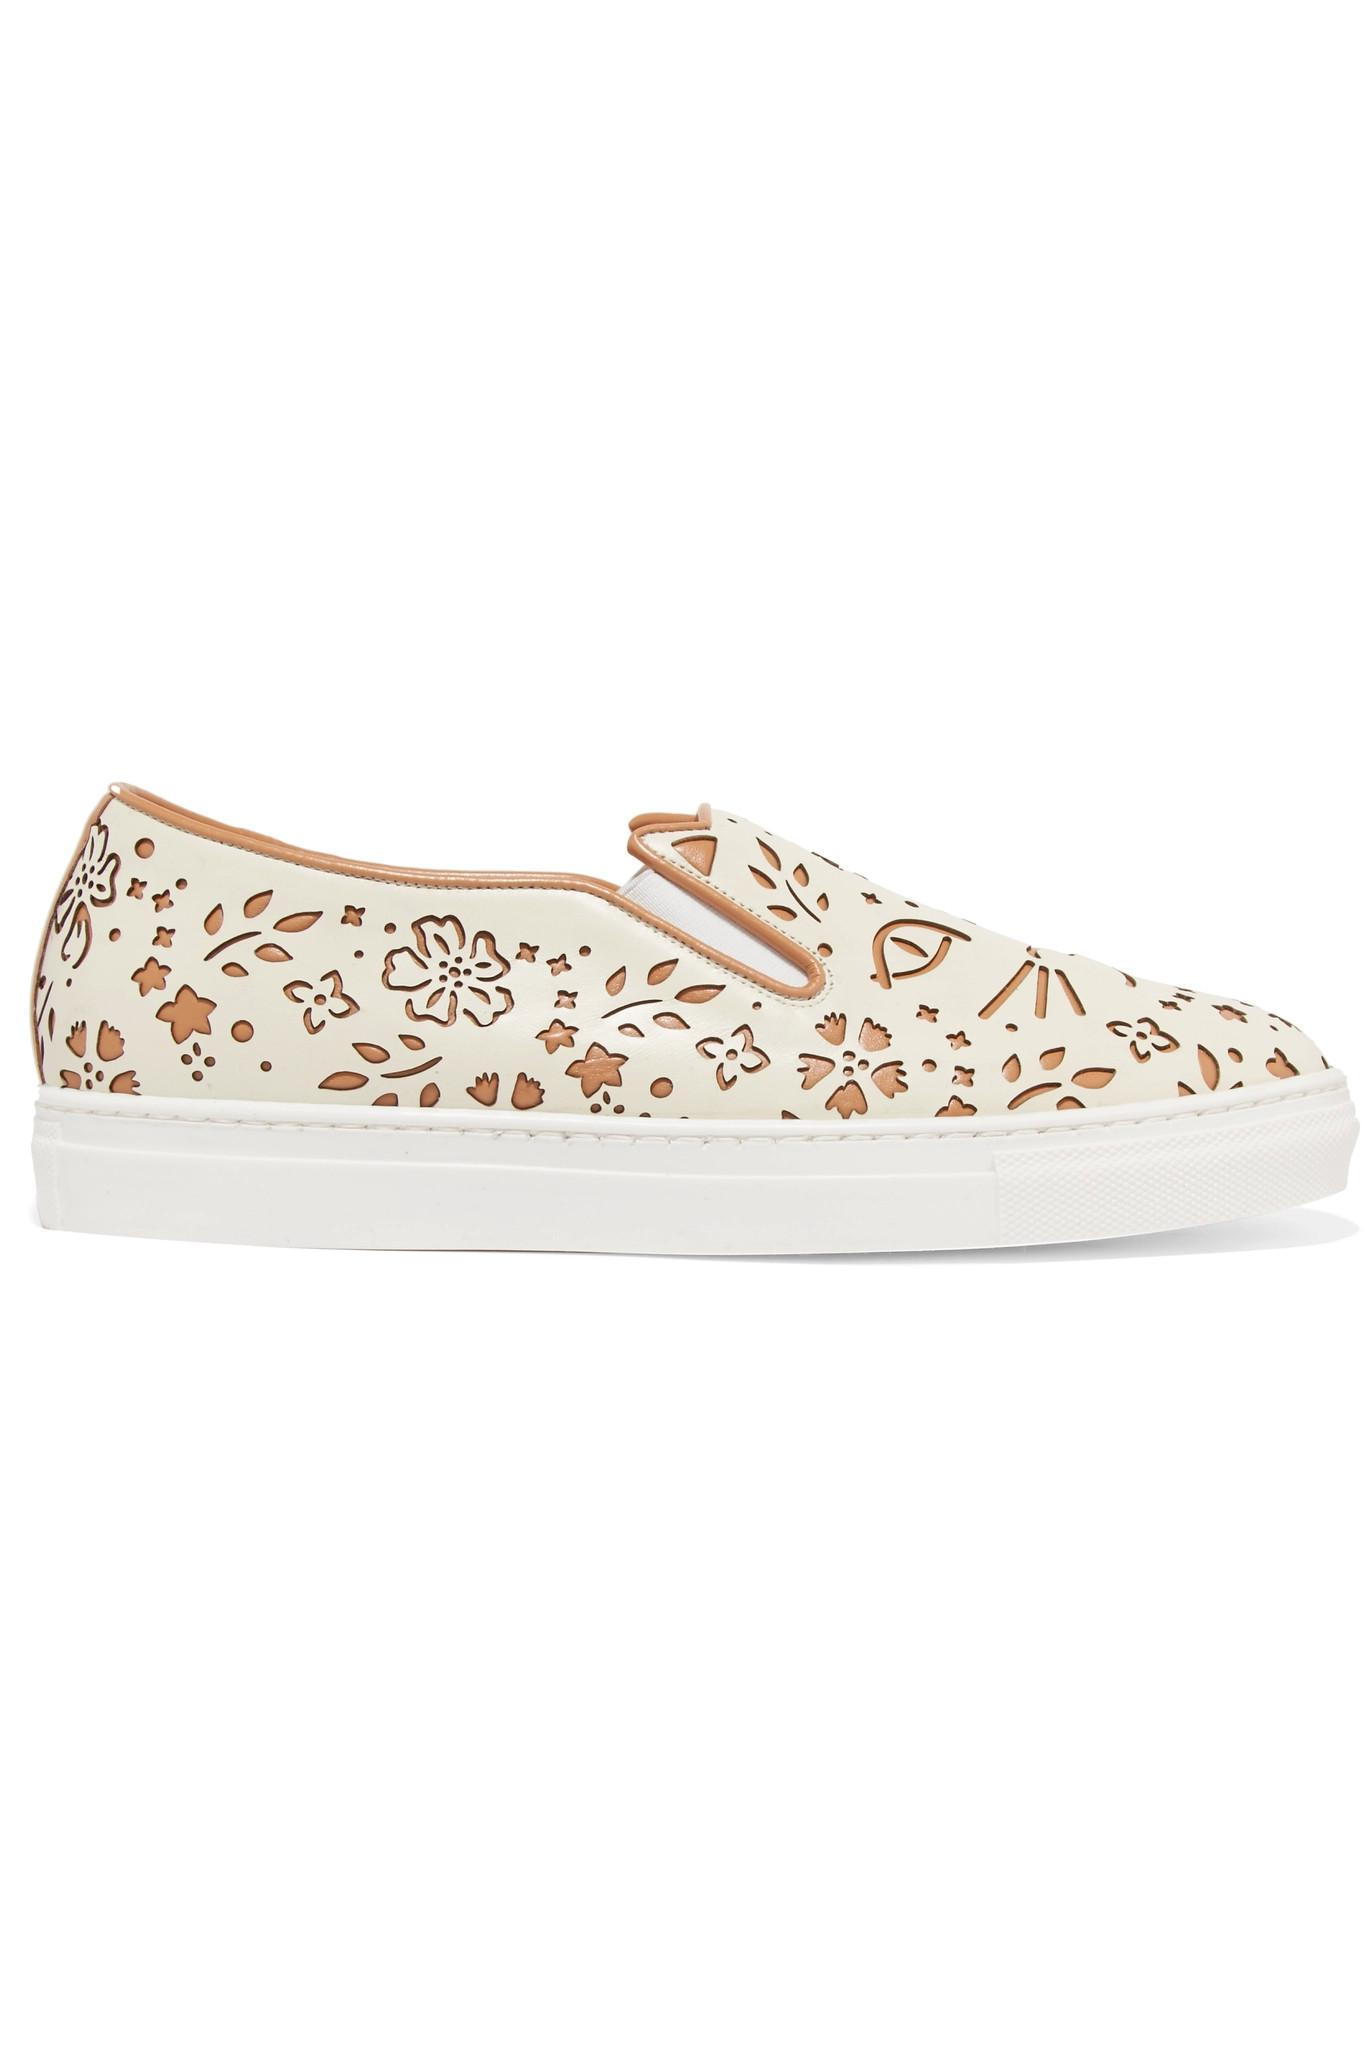 Good Quality Charlotte Olympia Cool Cats laser cut leather sneakers Cream tan Women